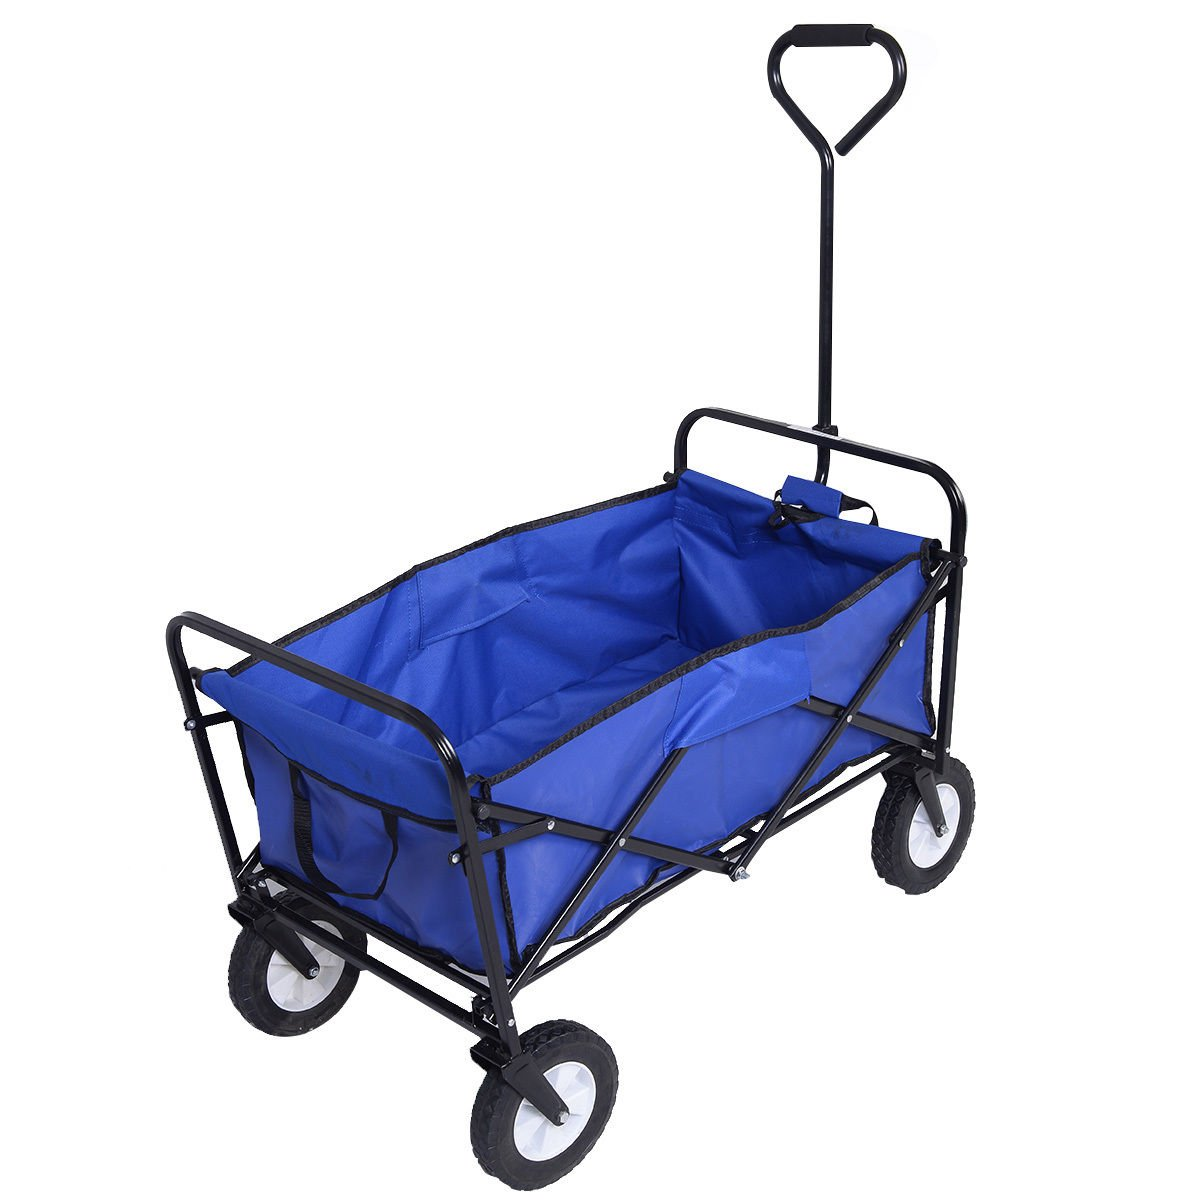 Amazon.com : Collapsible Folding Wagon Cart Garden Buggy Shopping Beach Toy  Sports Blue : Garden U0026 Outdoor